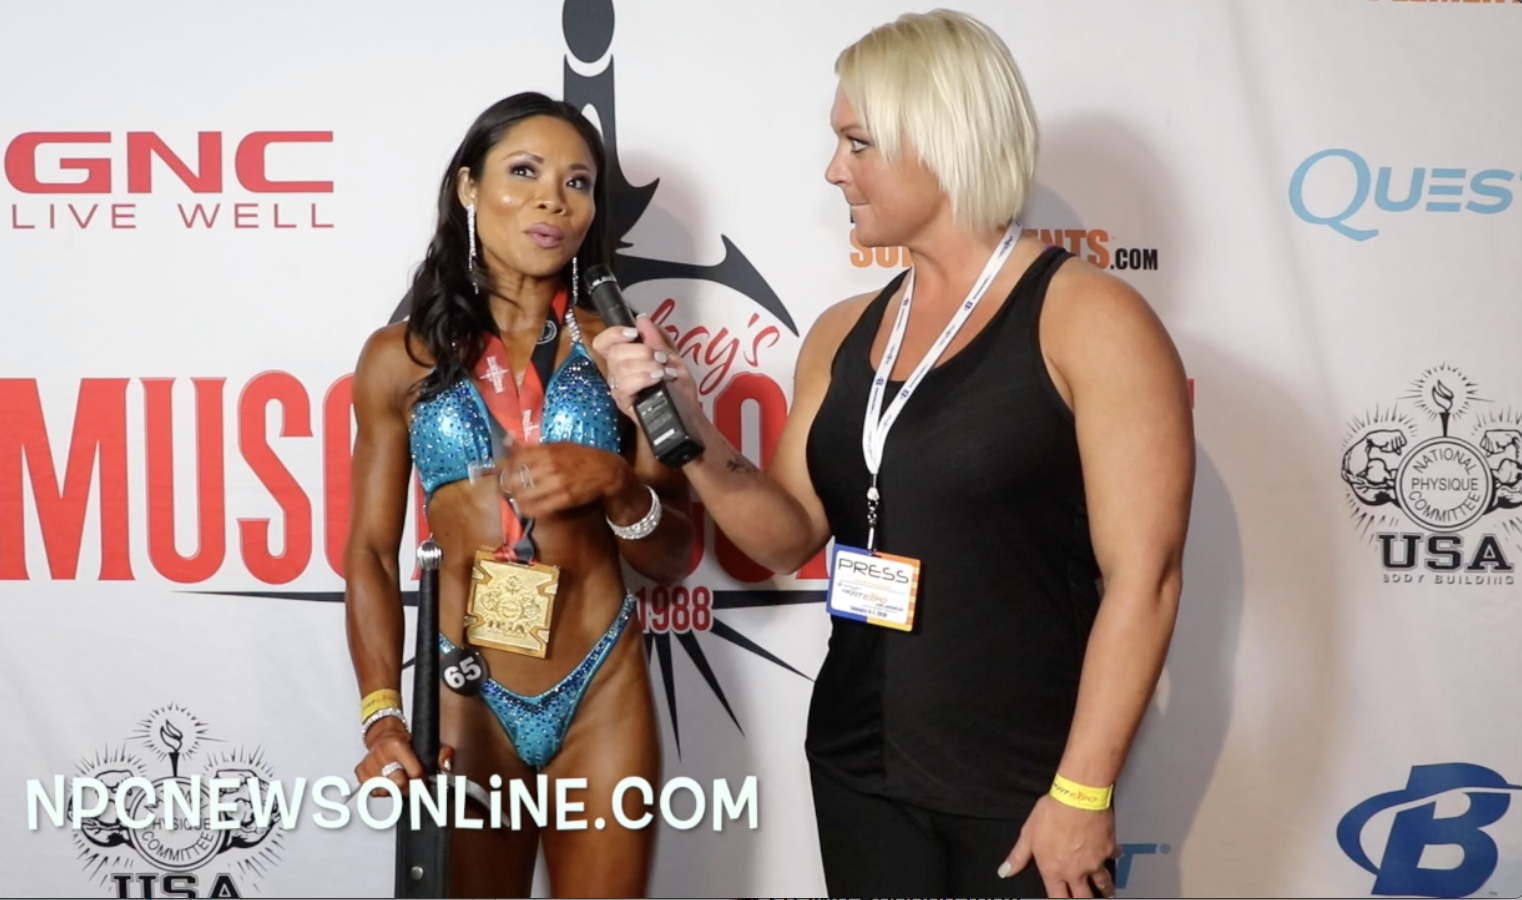 2018 NPC Muscle Contest Challenge Women's Figure Winner Angel Tran Contest Video